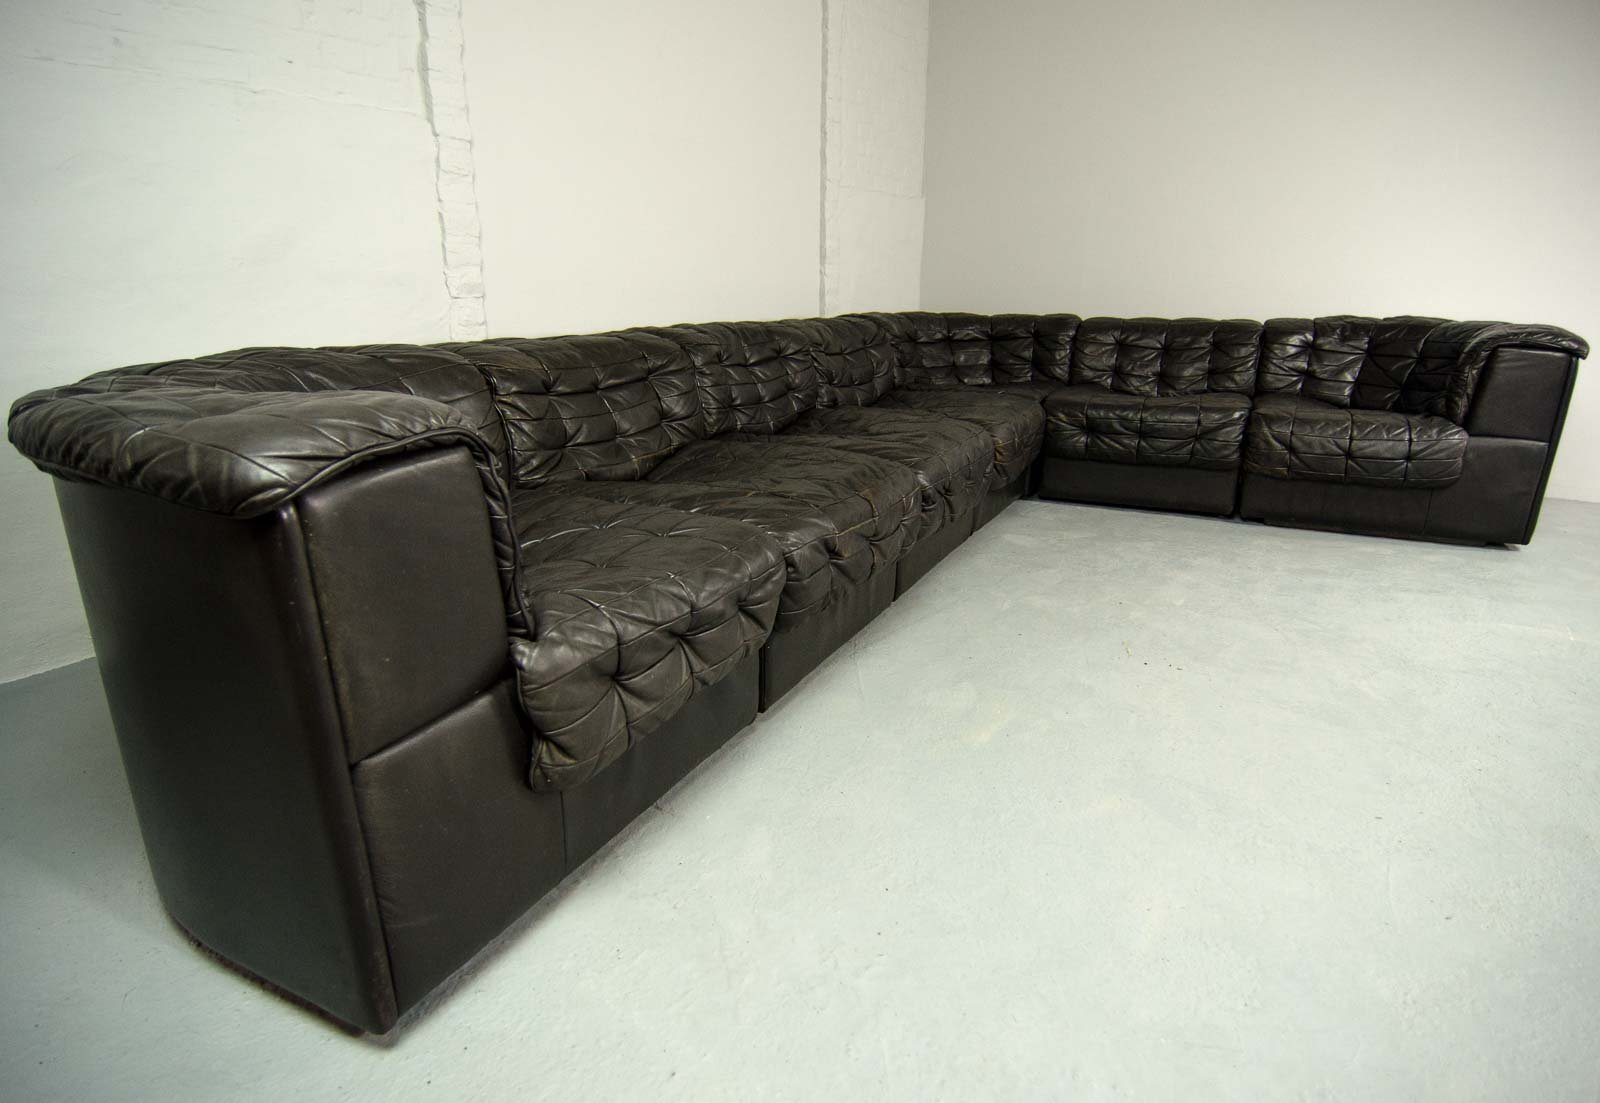 DS11 Black Brown Leather 7 Elements Modular Sofa From De Sede, 1970s